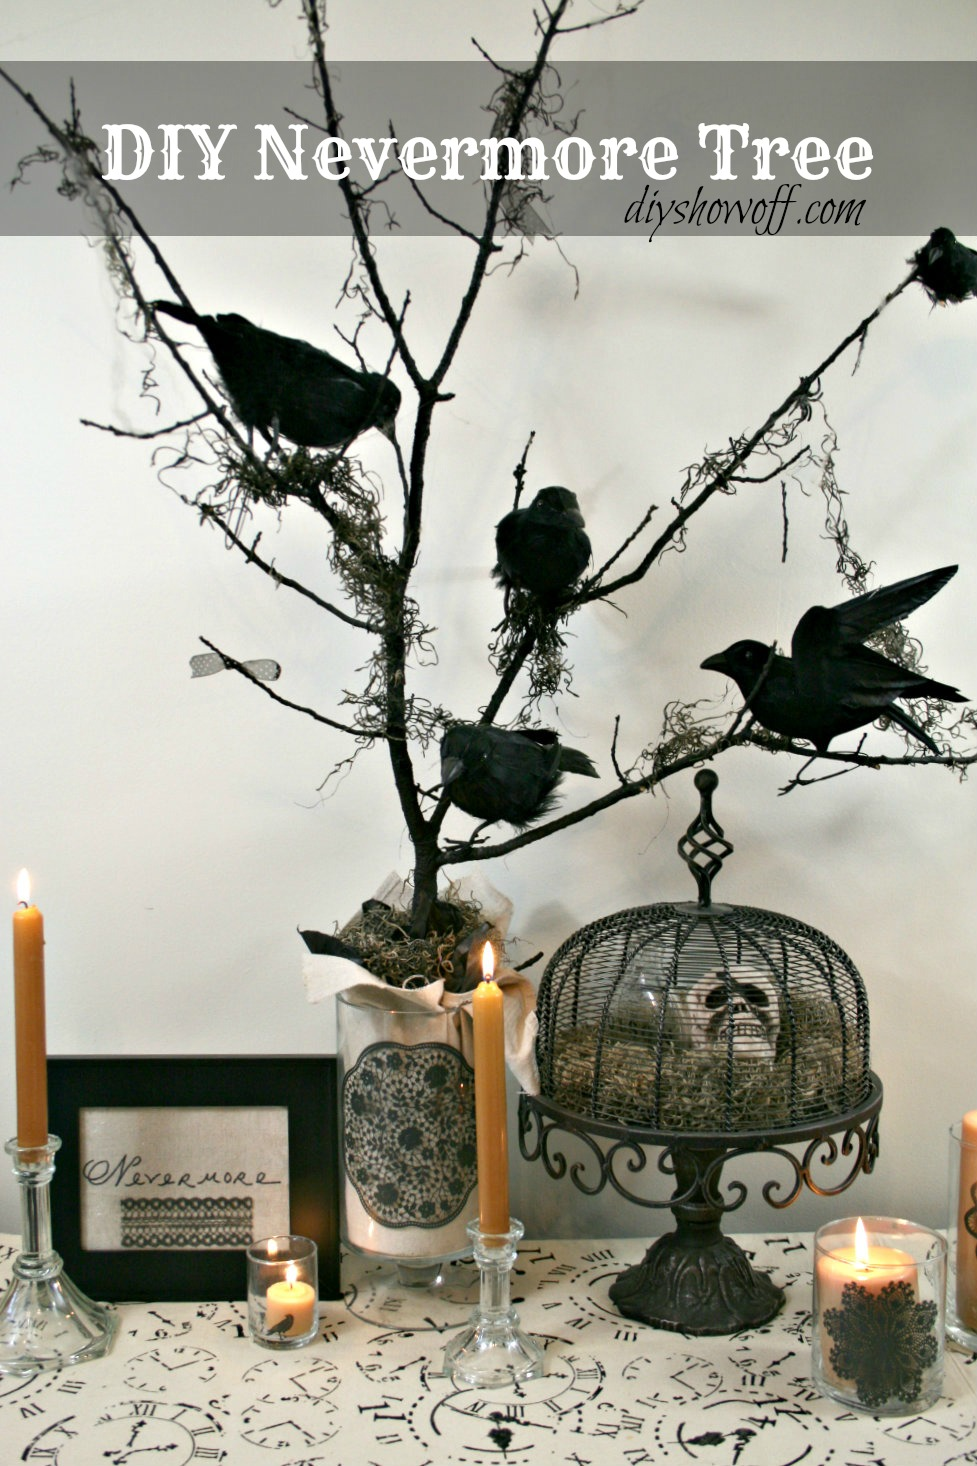 diy halloween decor ideas twenty halloween mantel and more decorating ideas fox hollow - Cheap Do It Yourself Halloween Decorations